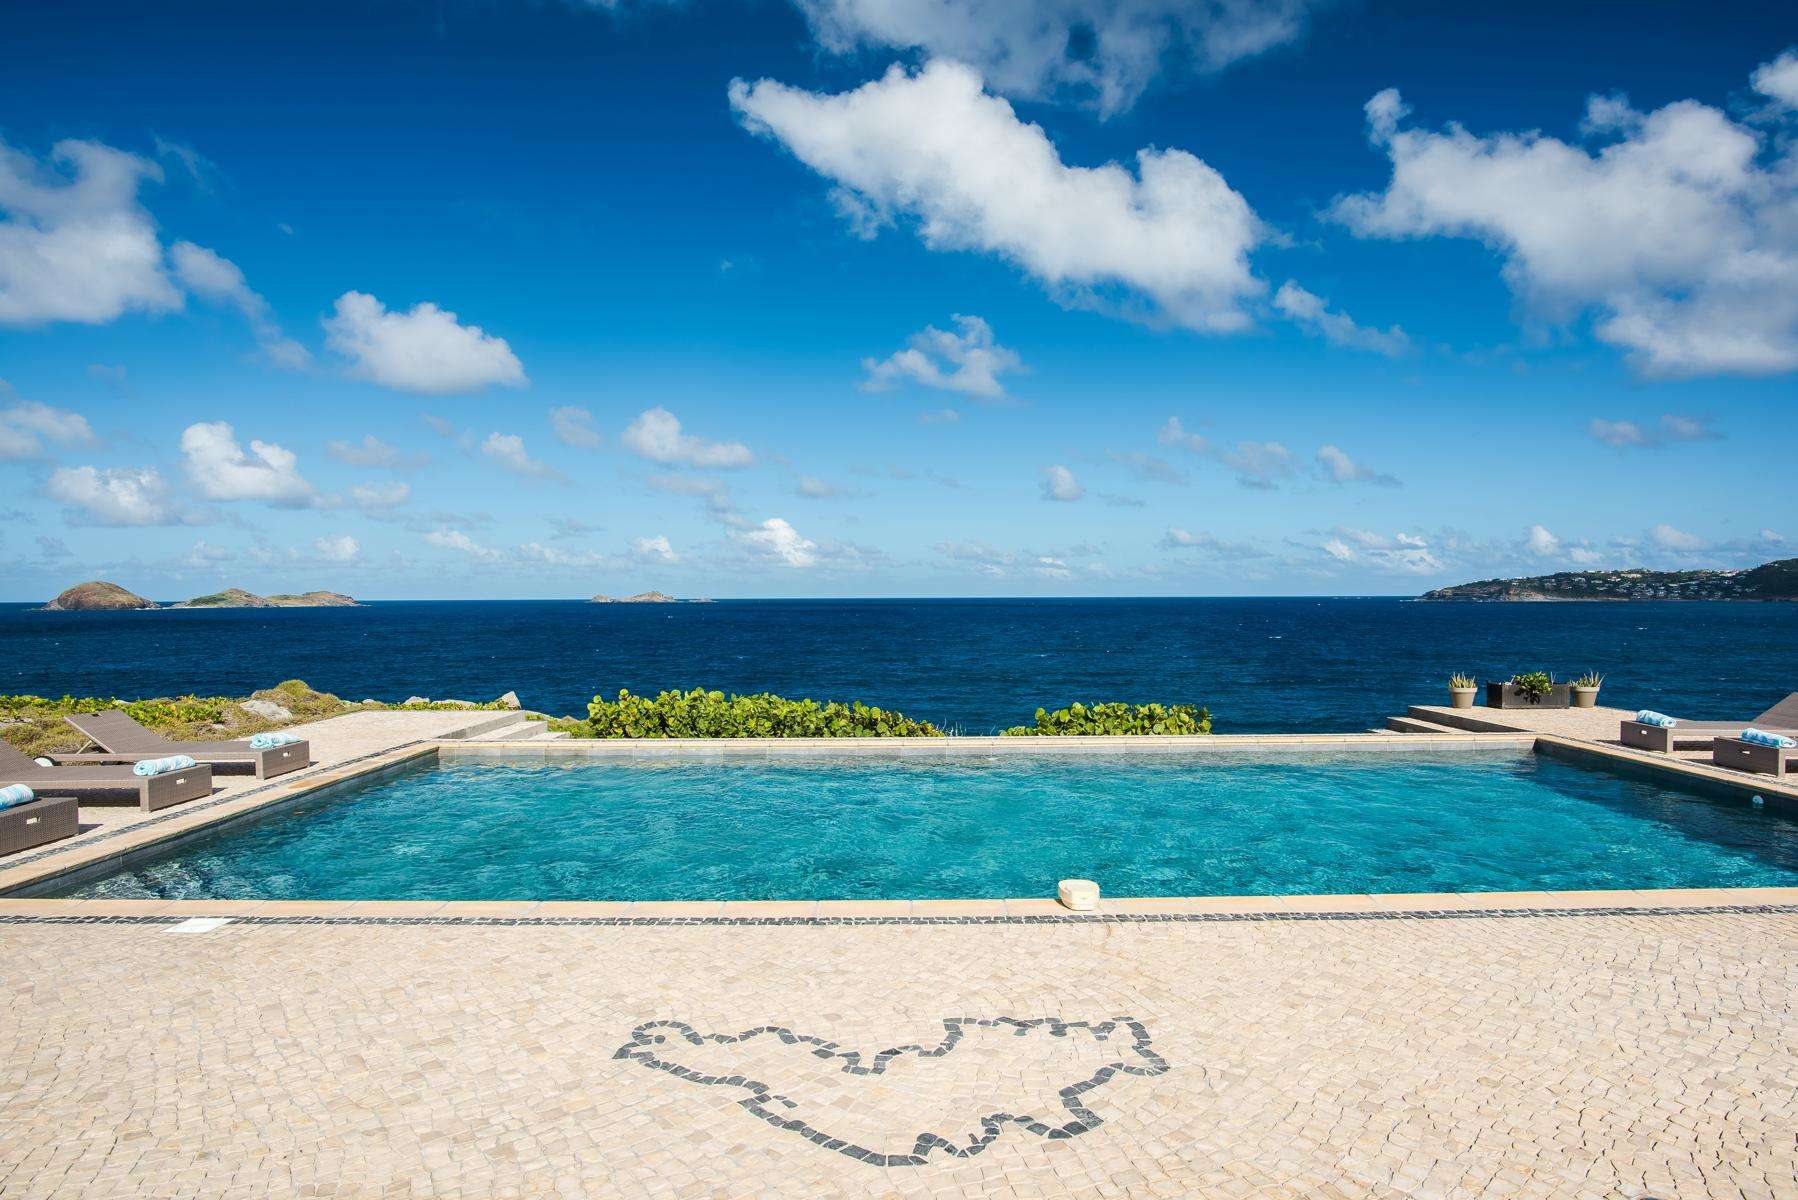 Luxury villa rentals caribbean - St barthelemy - Anse des cayes - No location 4 - Caribbean Breeze - Image 1/27